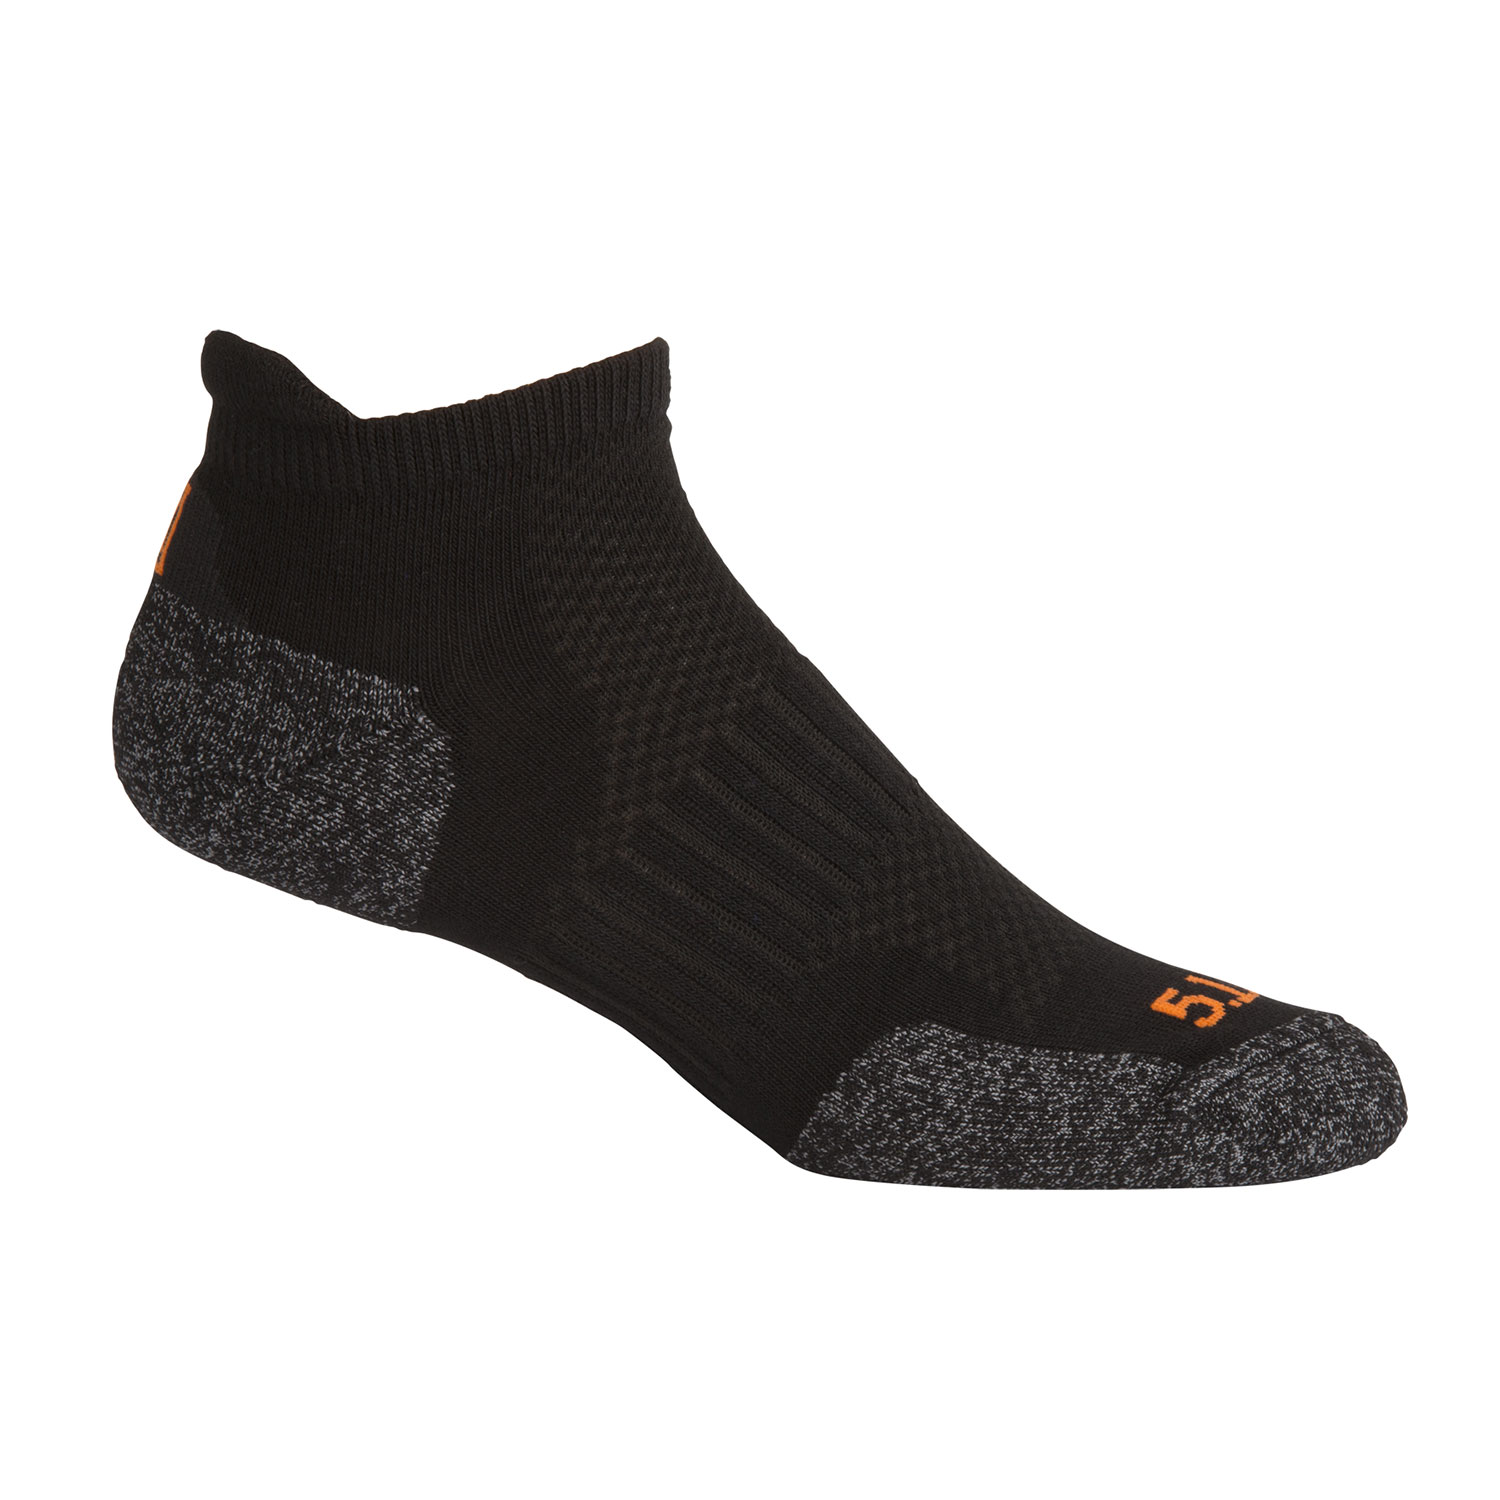 5.11 Tactical ABR Training Socks